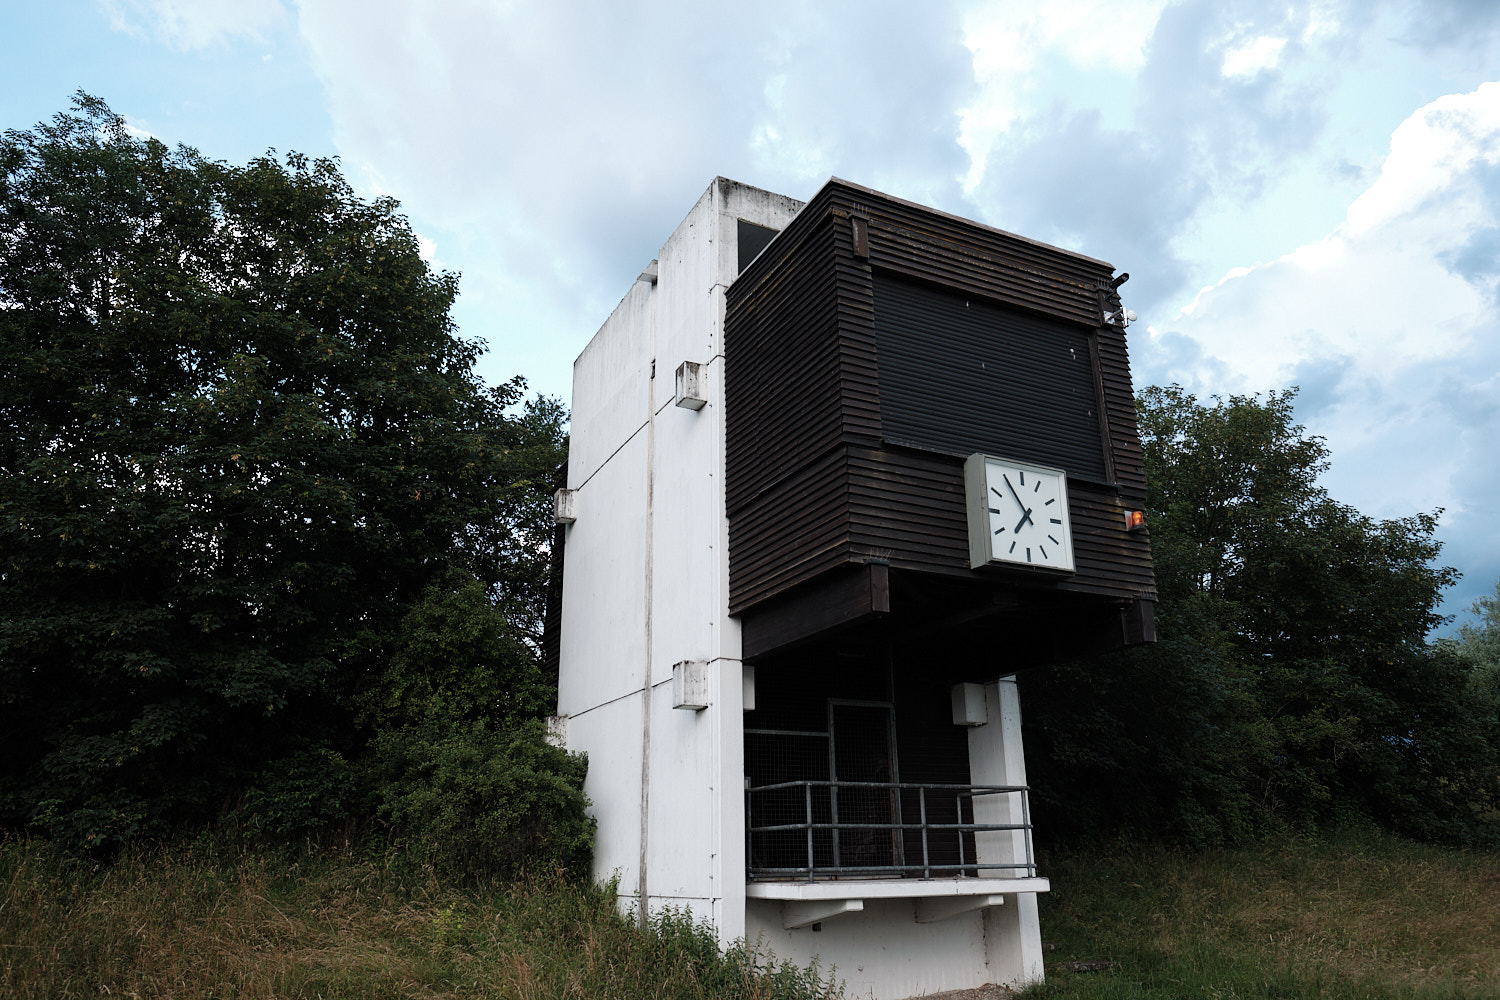 1972 Olympic Games Regatta course Oberschleißheim near Munich. Observation tower at the end side of the Regatta course with watch. Concrete building